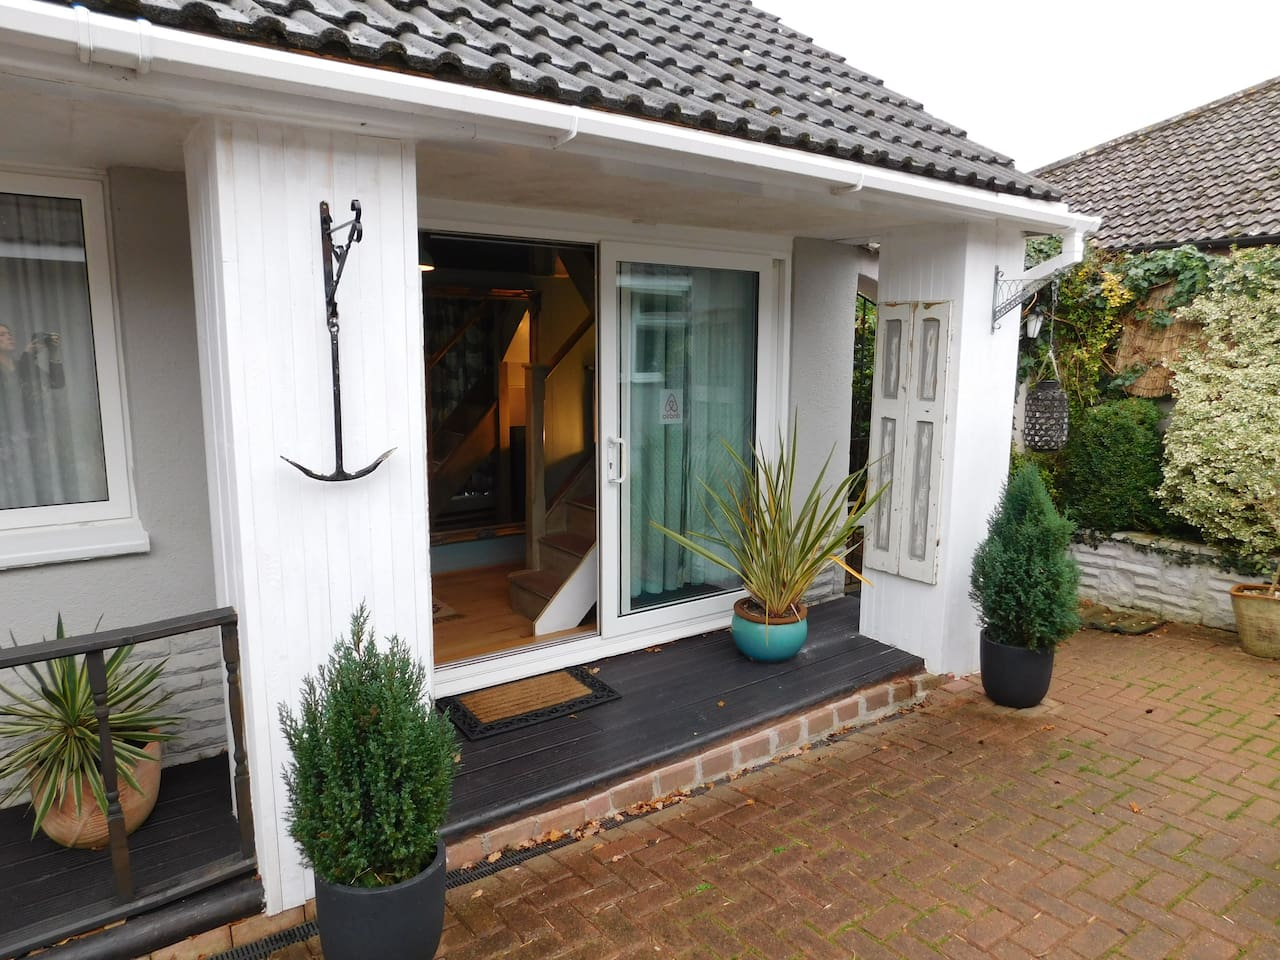 Private entrance to the annexe via sliding doors.